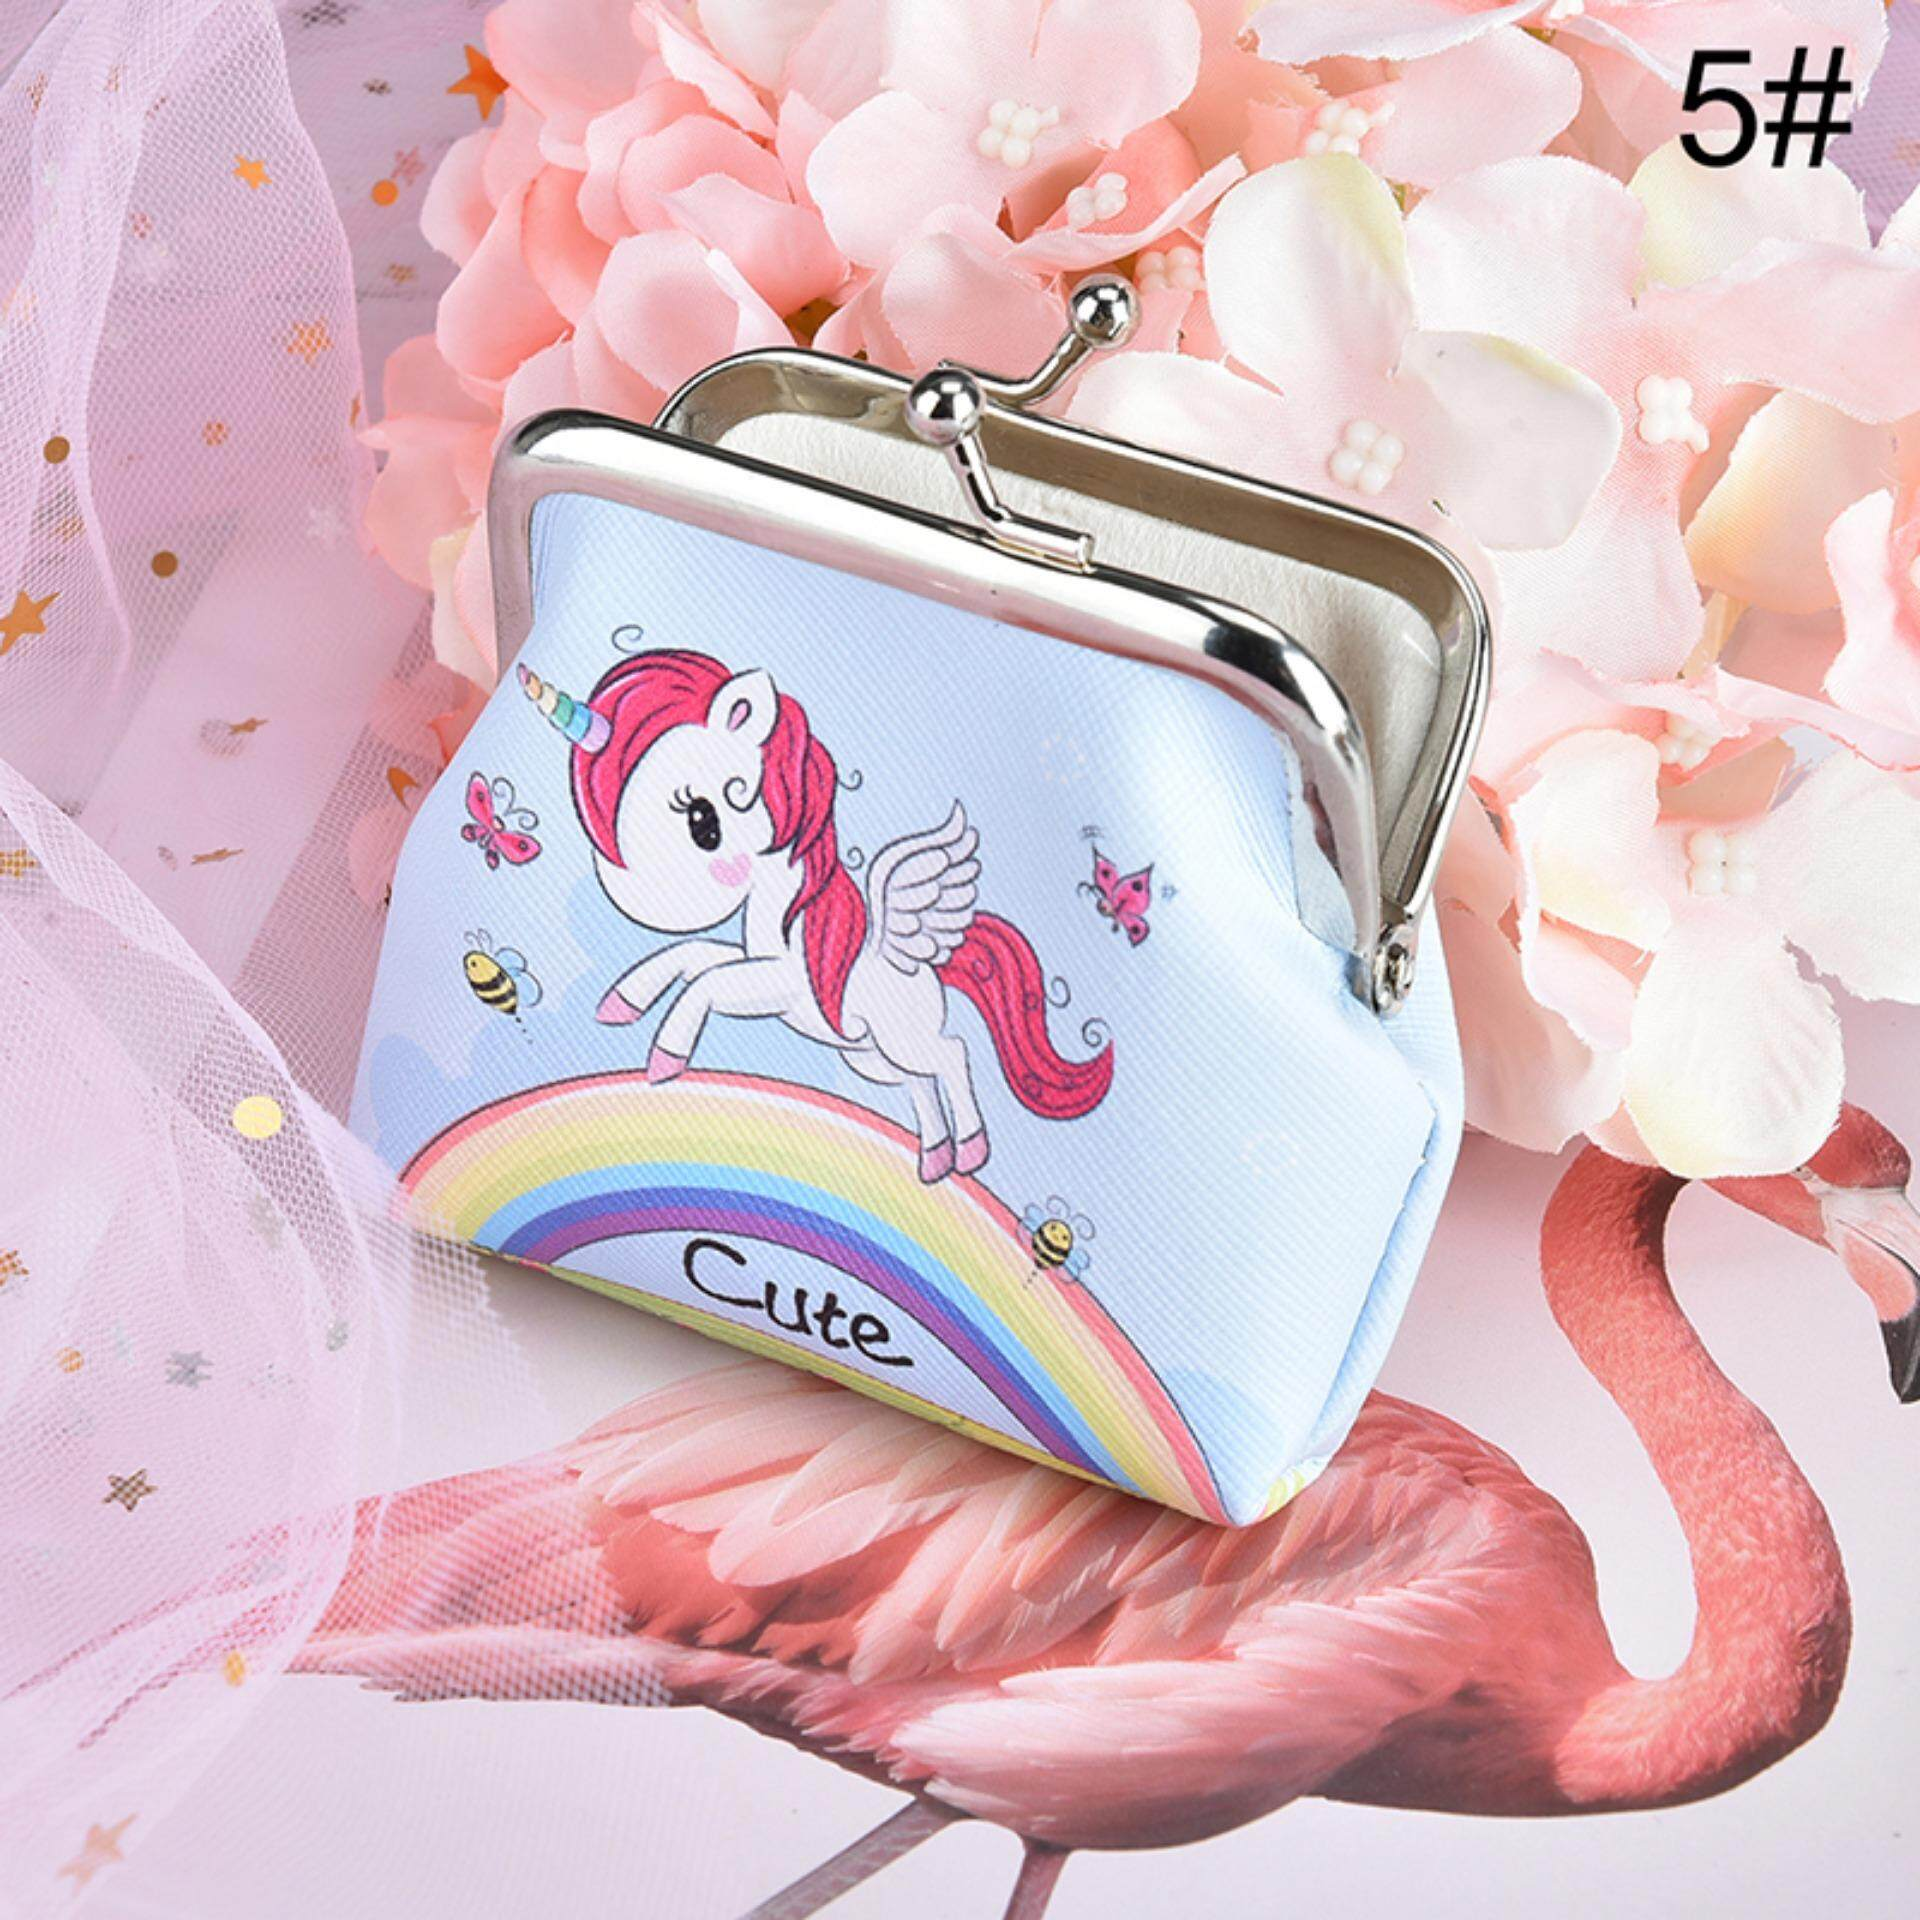 Veli Shy Unicorn Printed Fashion Pu Coin Purses Wallet Ladies Key Holder Change Pouch By Veli Shy.